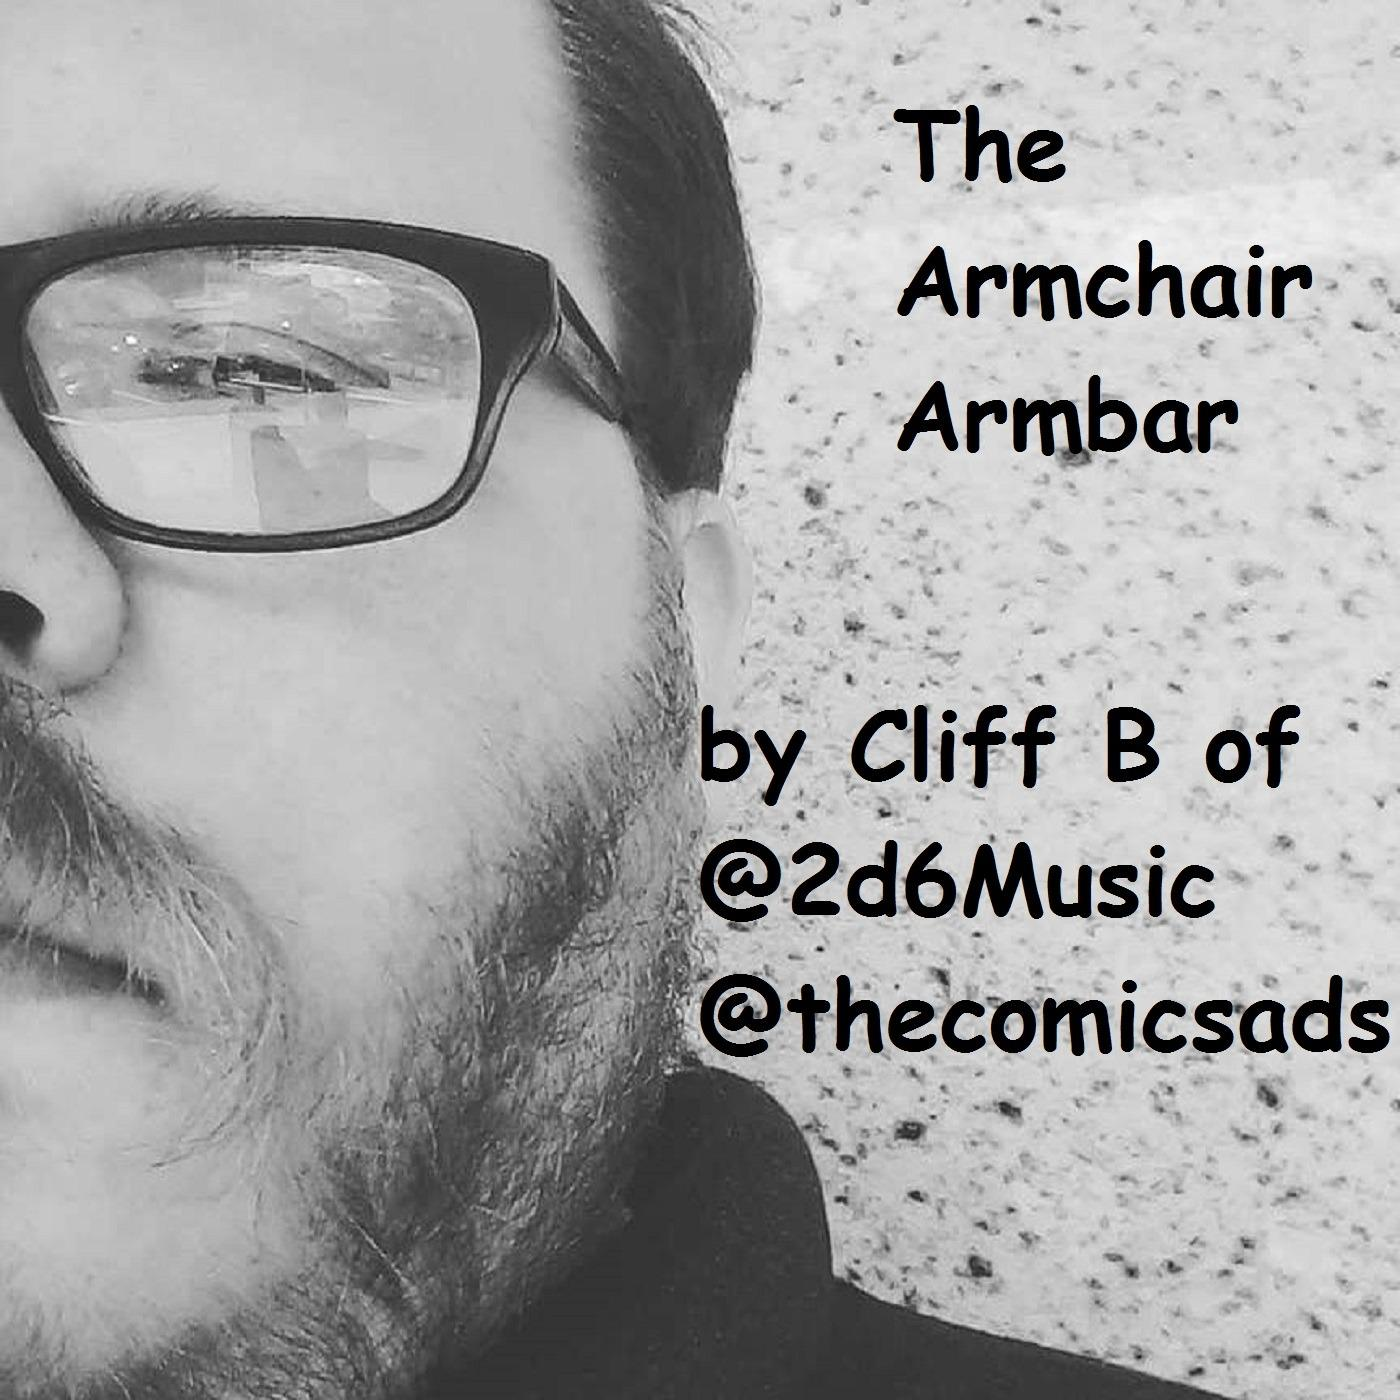 The Armchair Armbar Episode 3 - The Retirement of the Undertaker